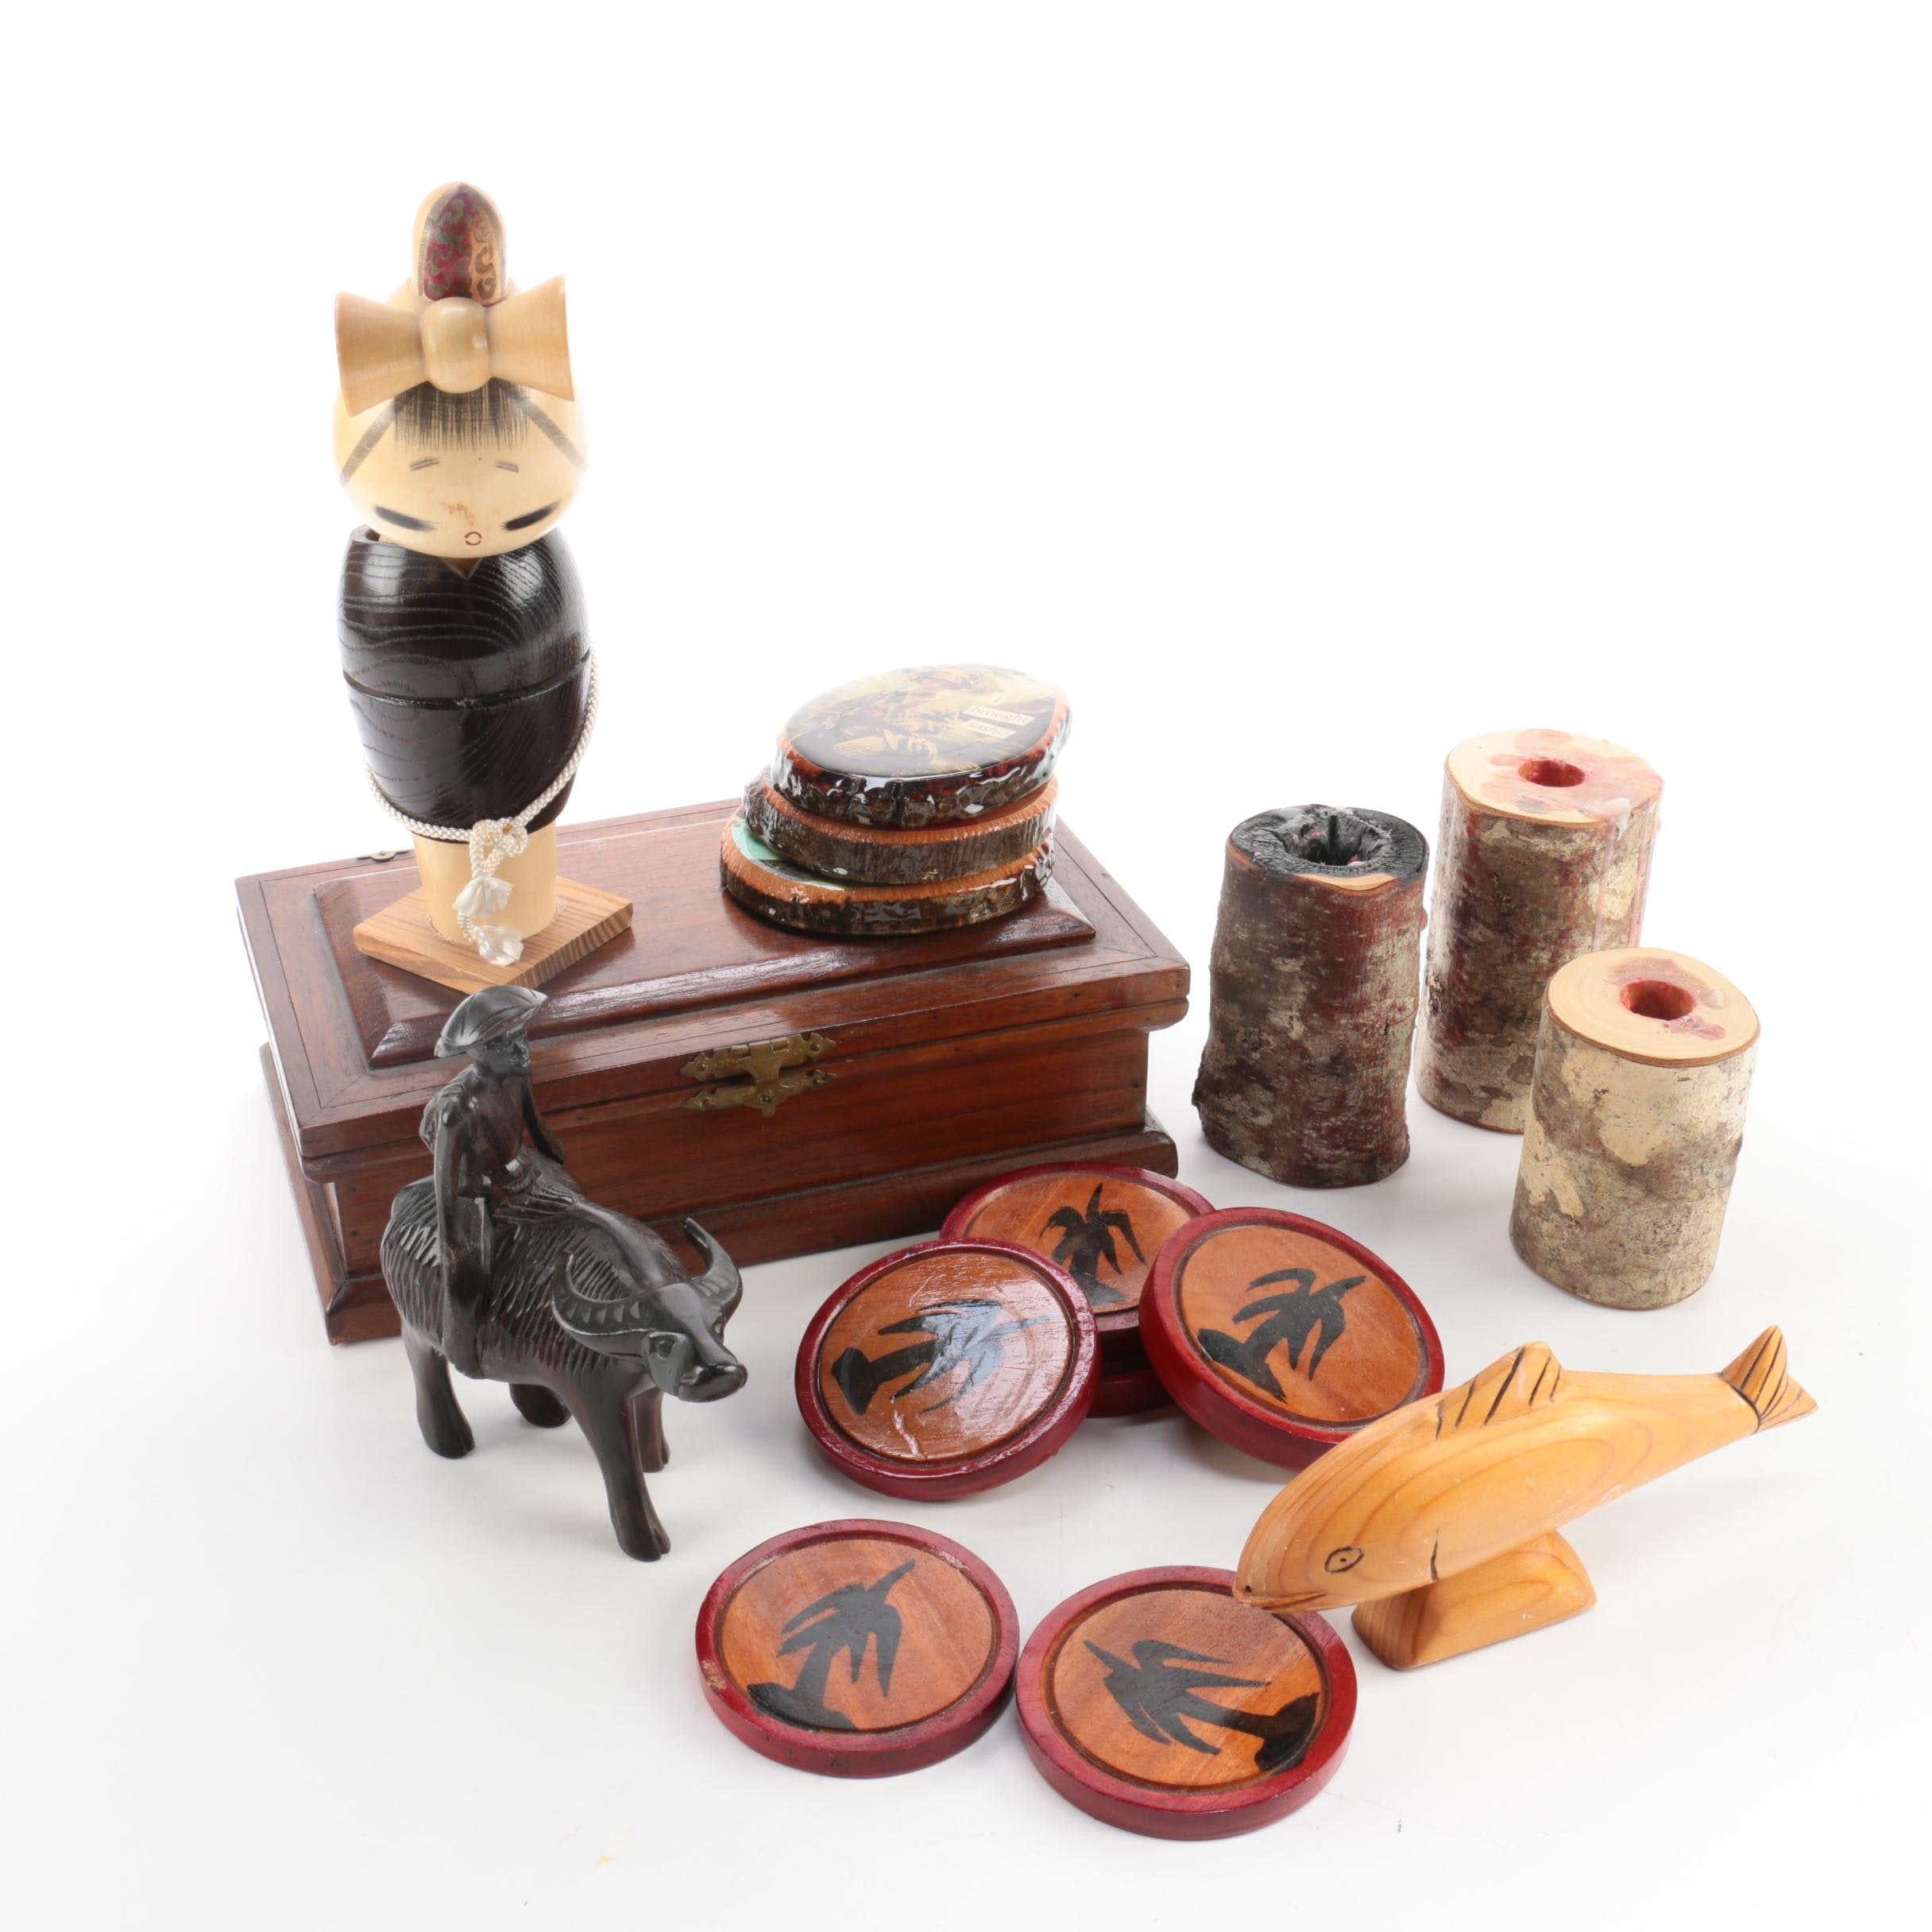 Wooden Hinged Box, Candle Holders, Figurines and Coasters